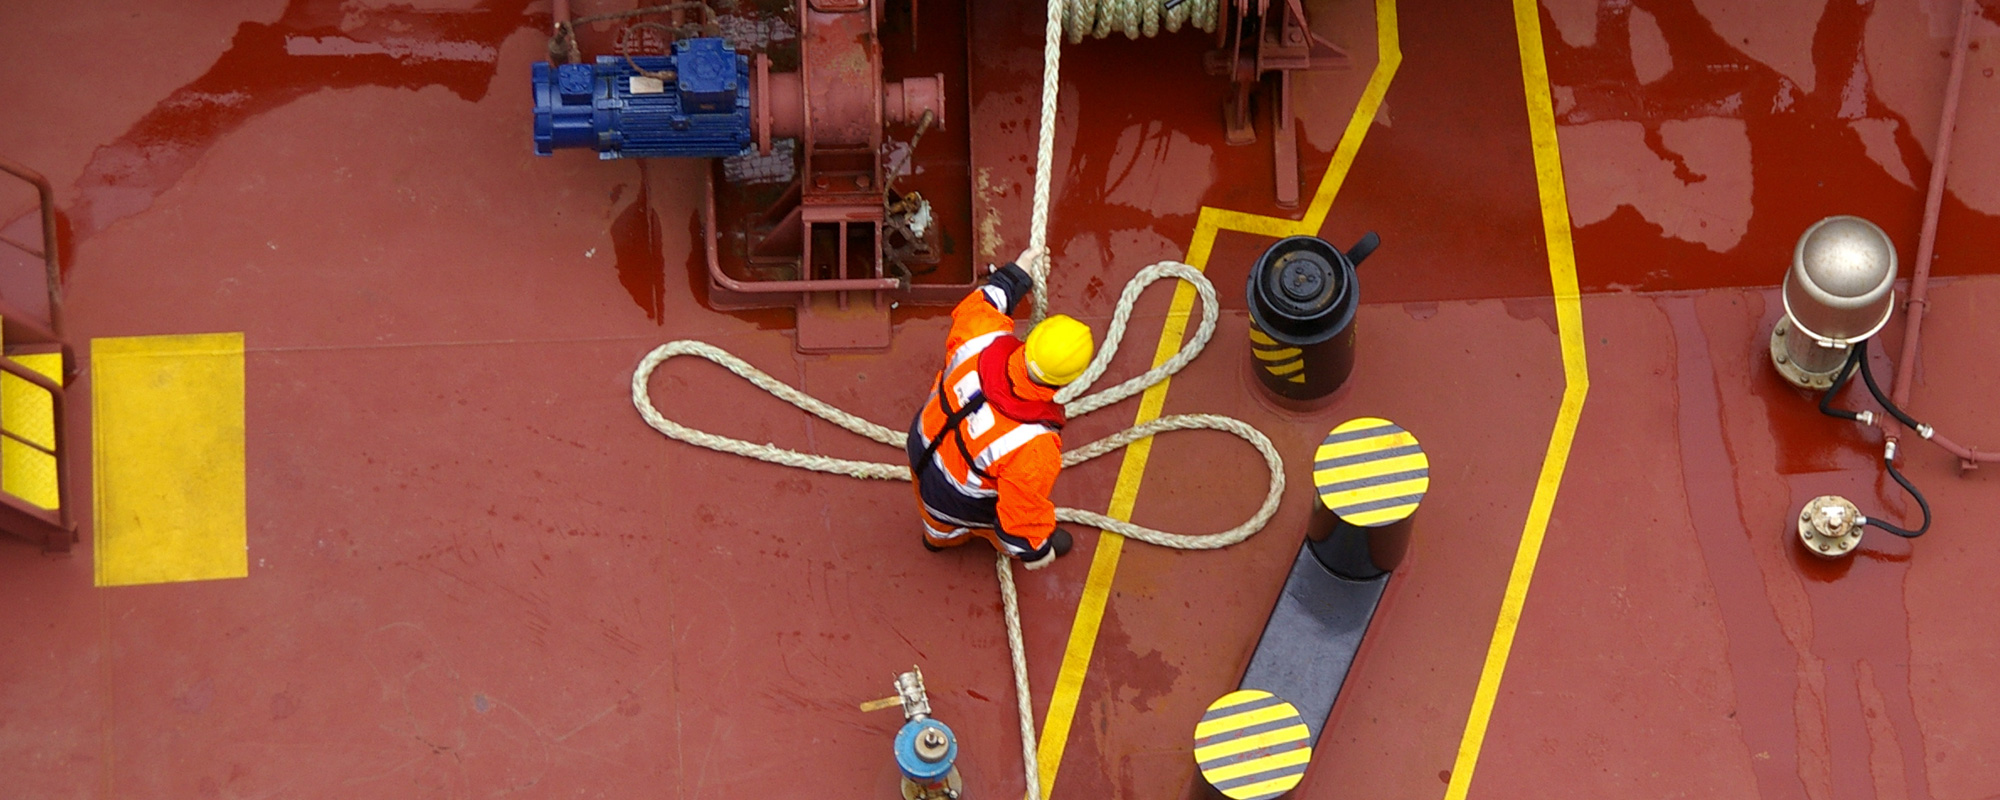 Rope on foredeck Image